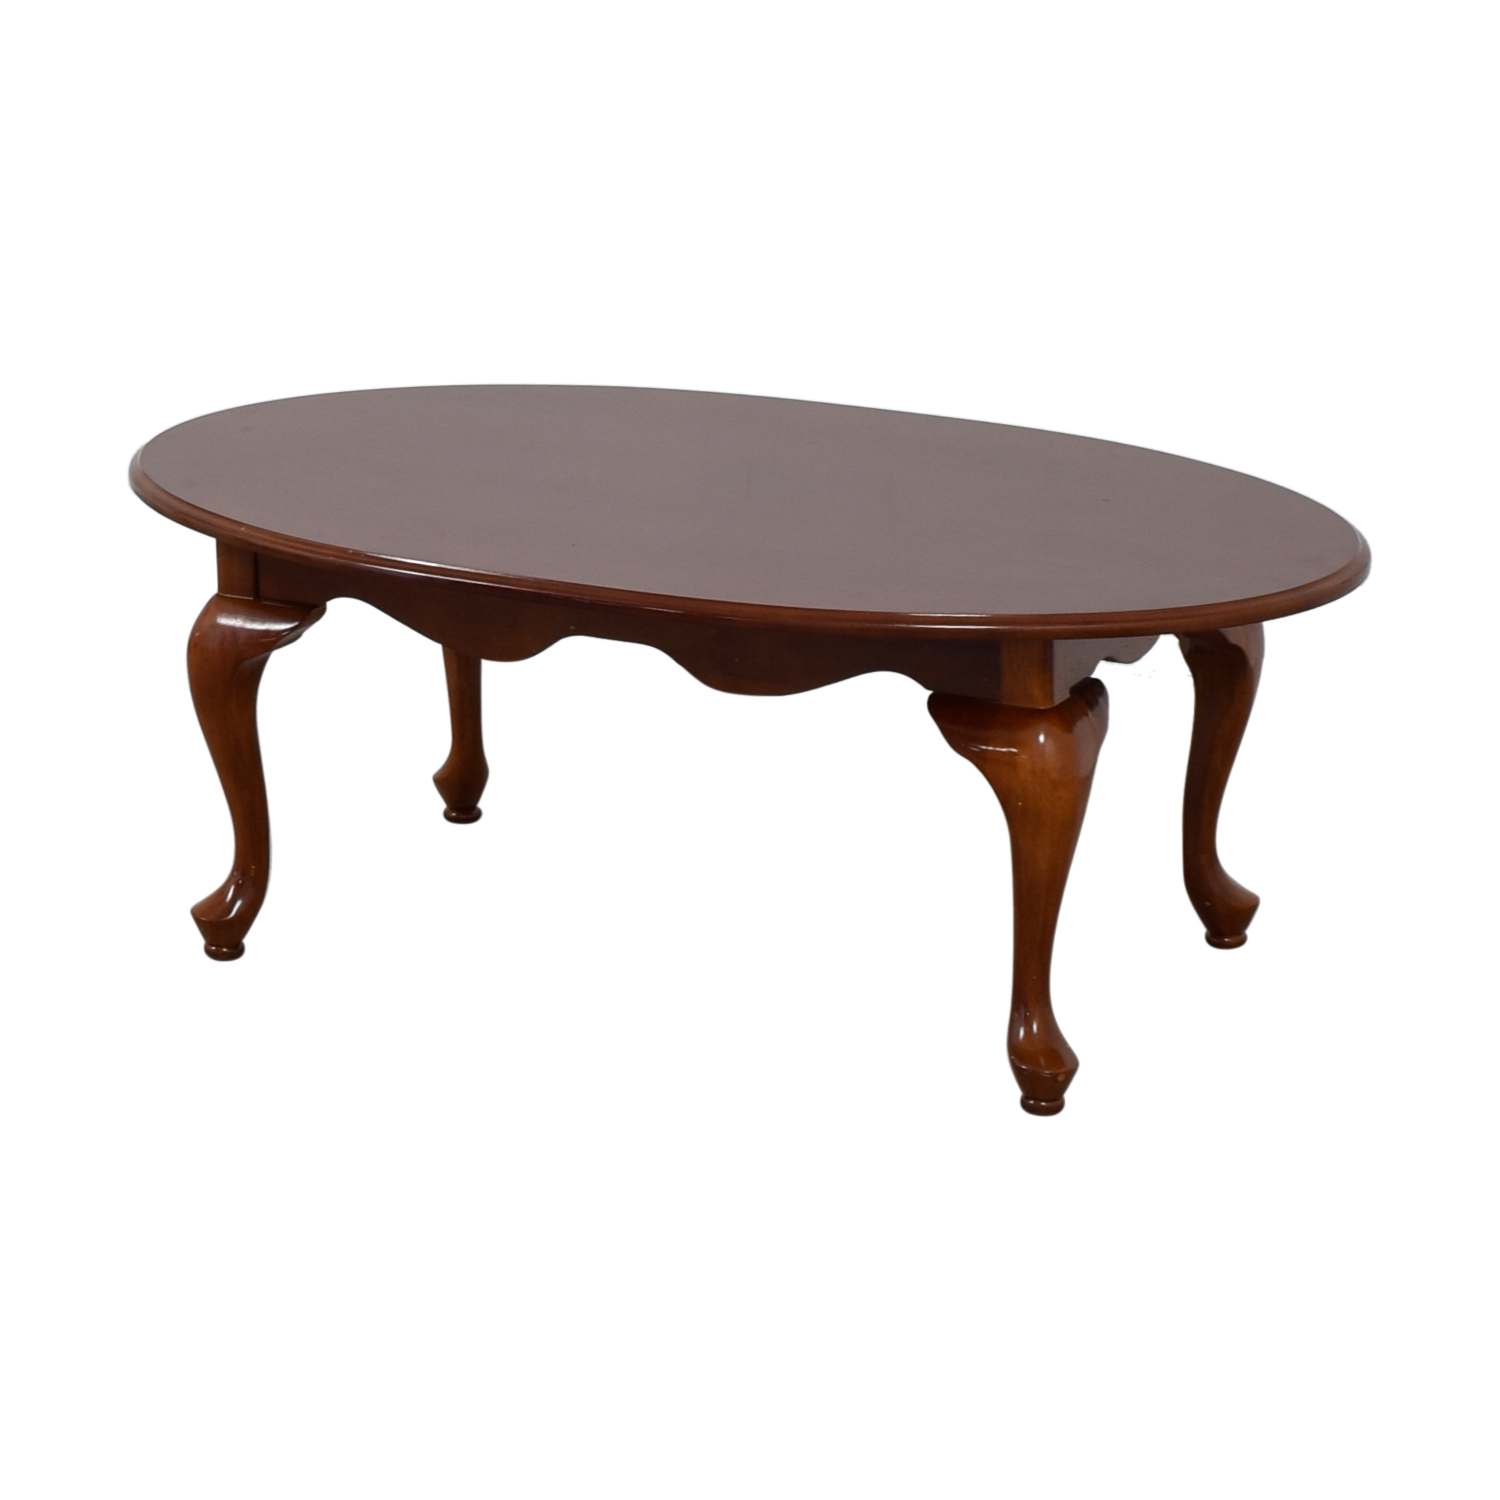 Wood Oval Coffee Table Made In China: Oval Dovetailed Wood Coffee Table / Tables